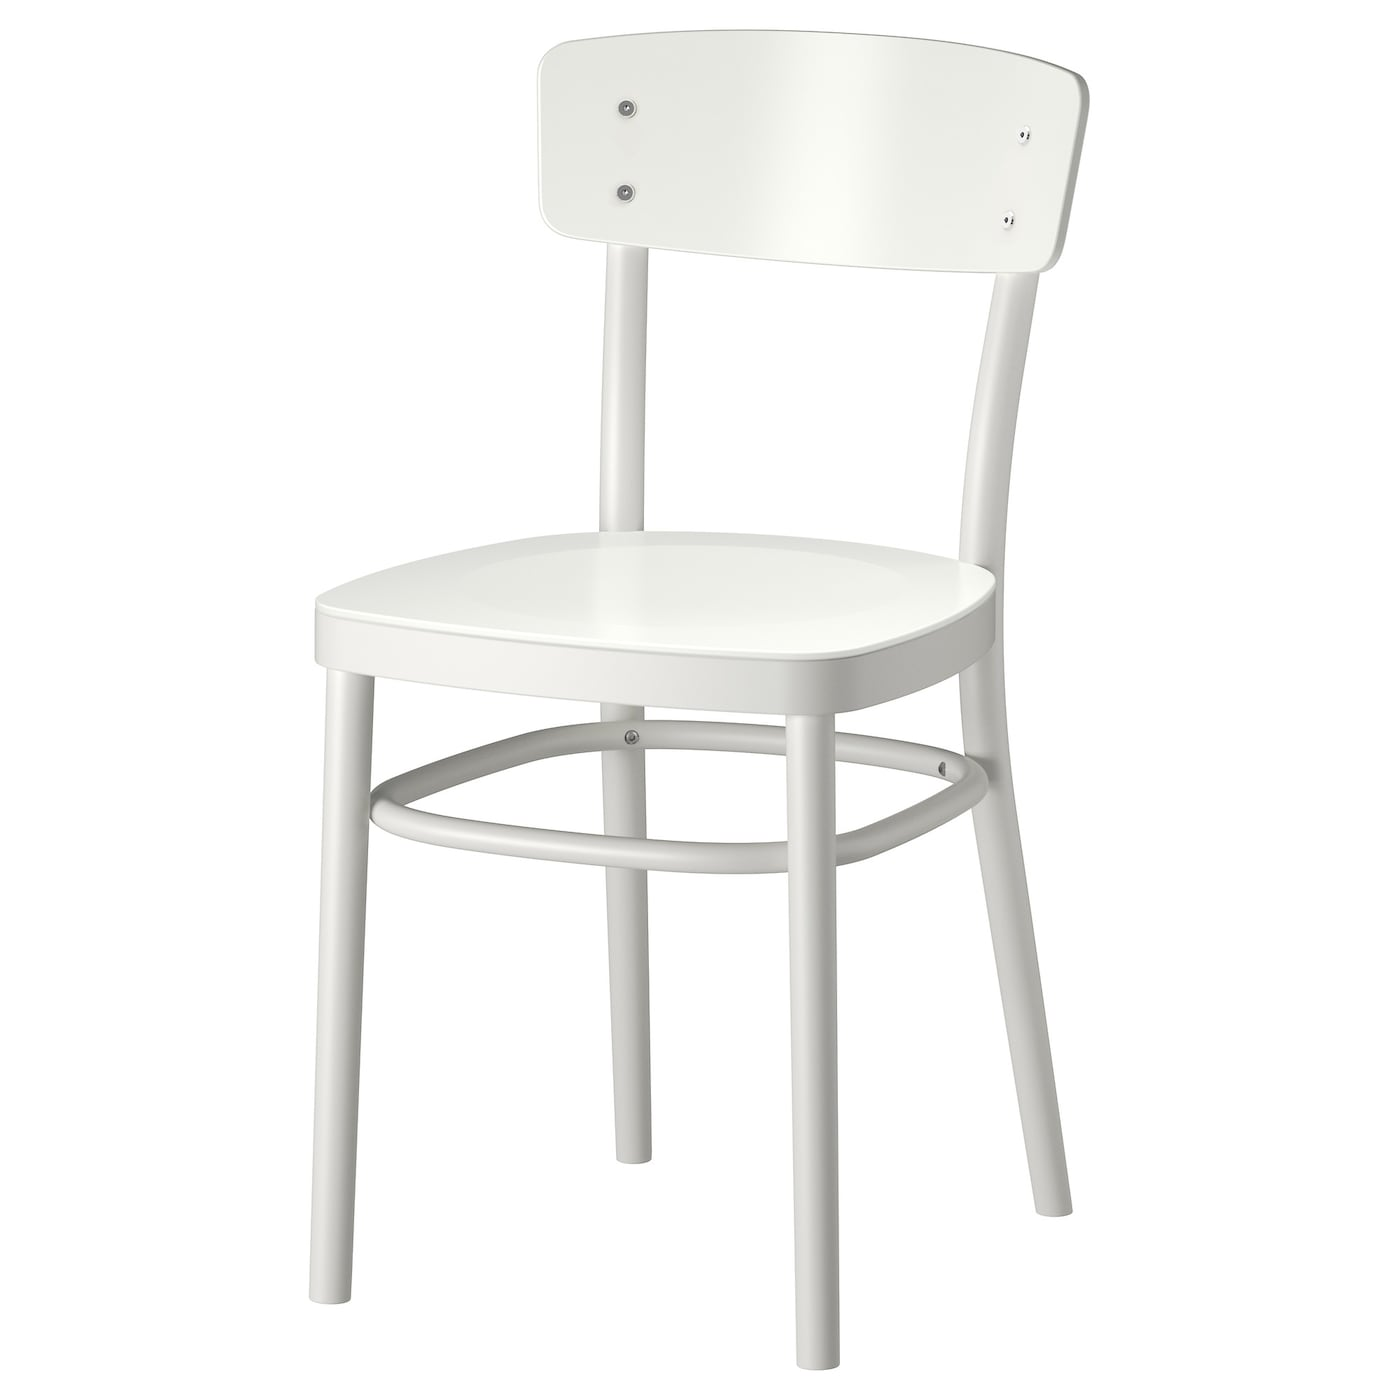 Dining Chairs amp Kitchen Chairs IKEA : idolf chair white0207590pe361528s5 from www.ikea.com size 2000 x 2000 jpeg 129kB